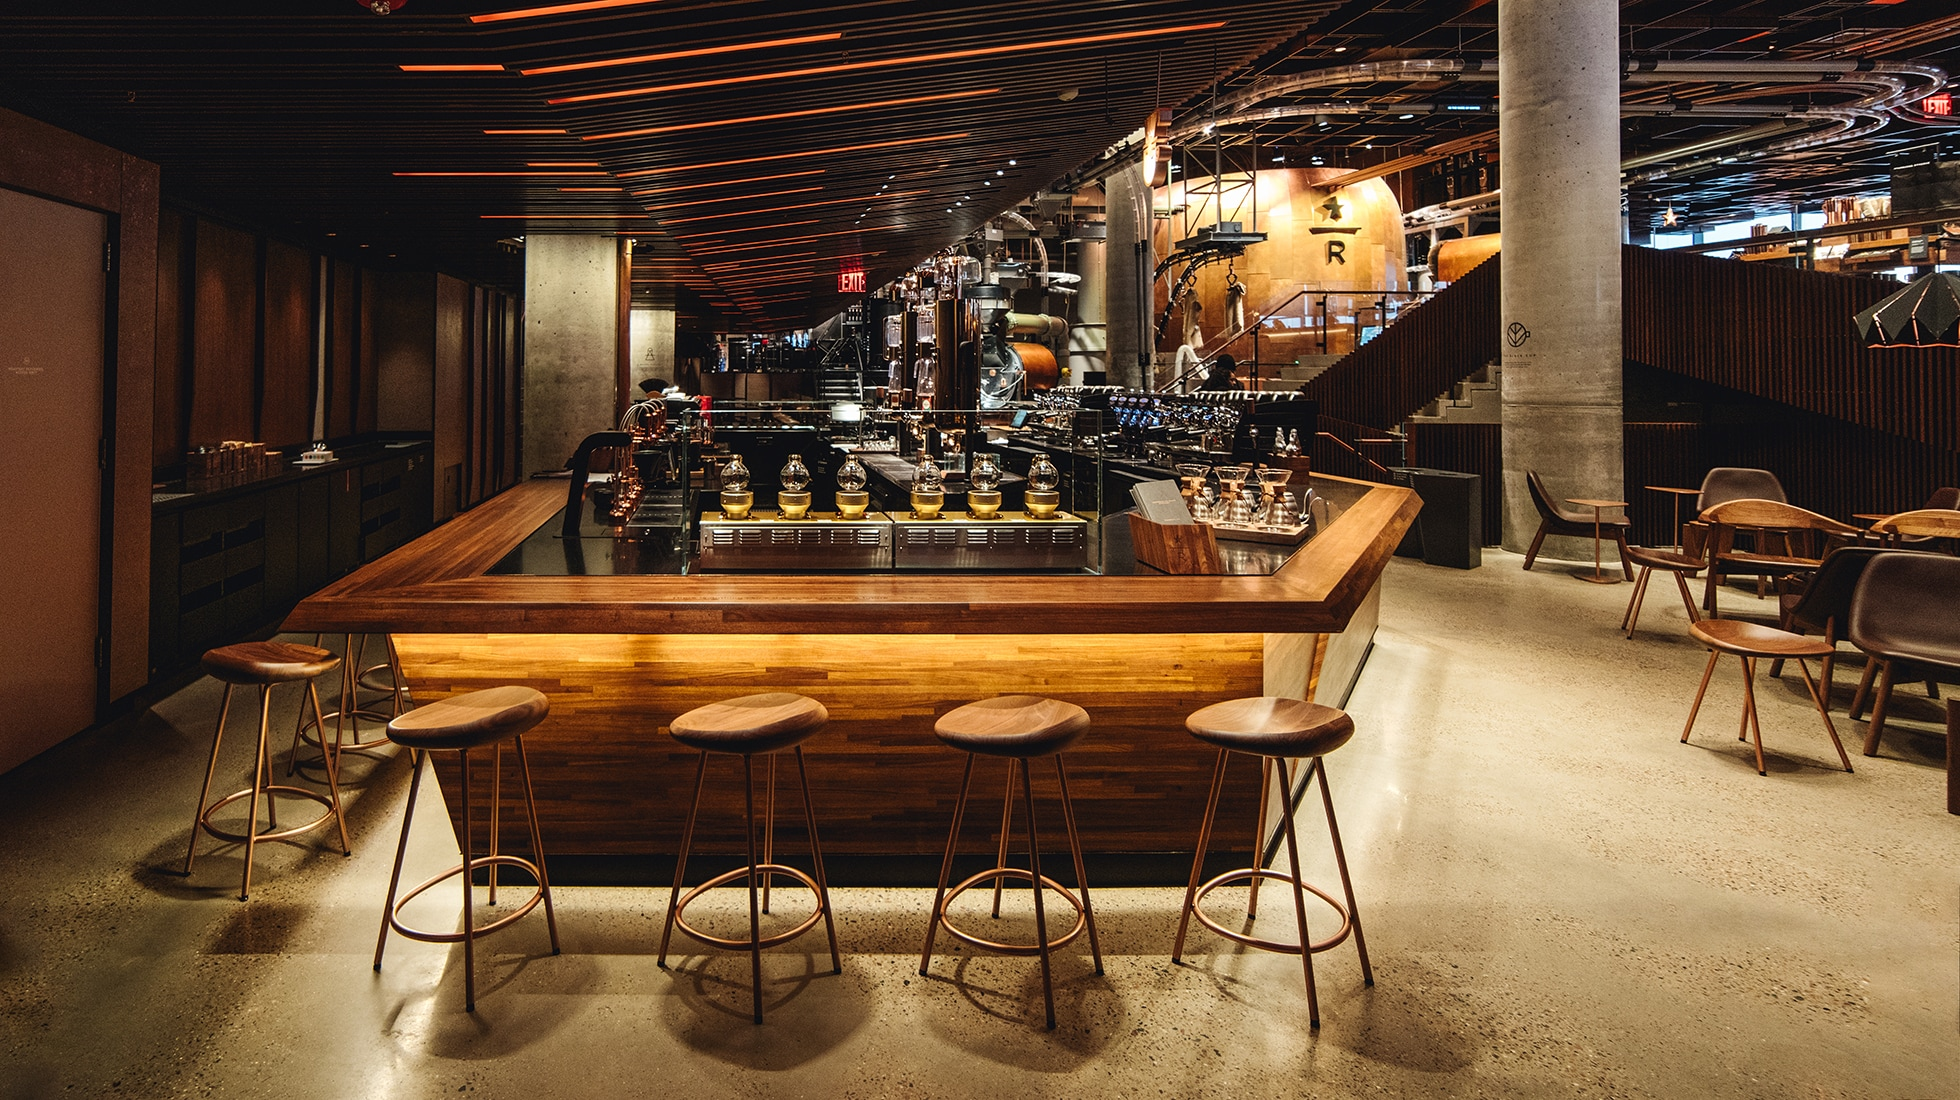 The Experience Bar in the New York Roastery